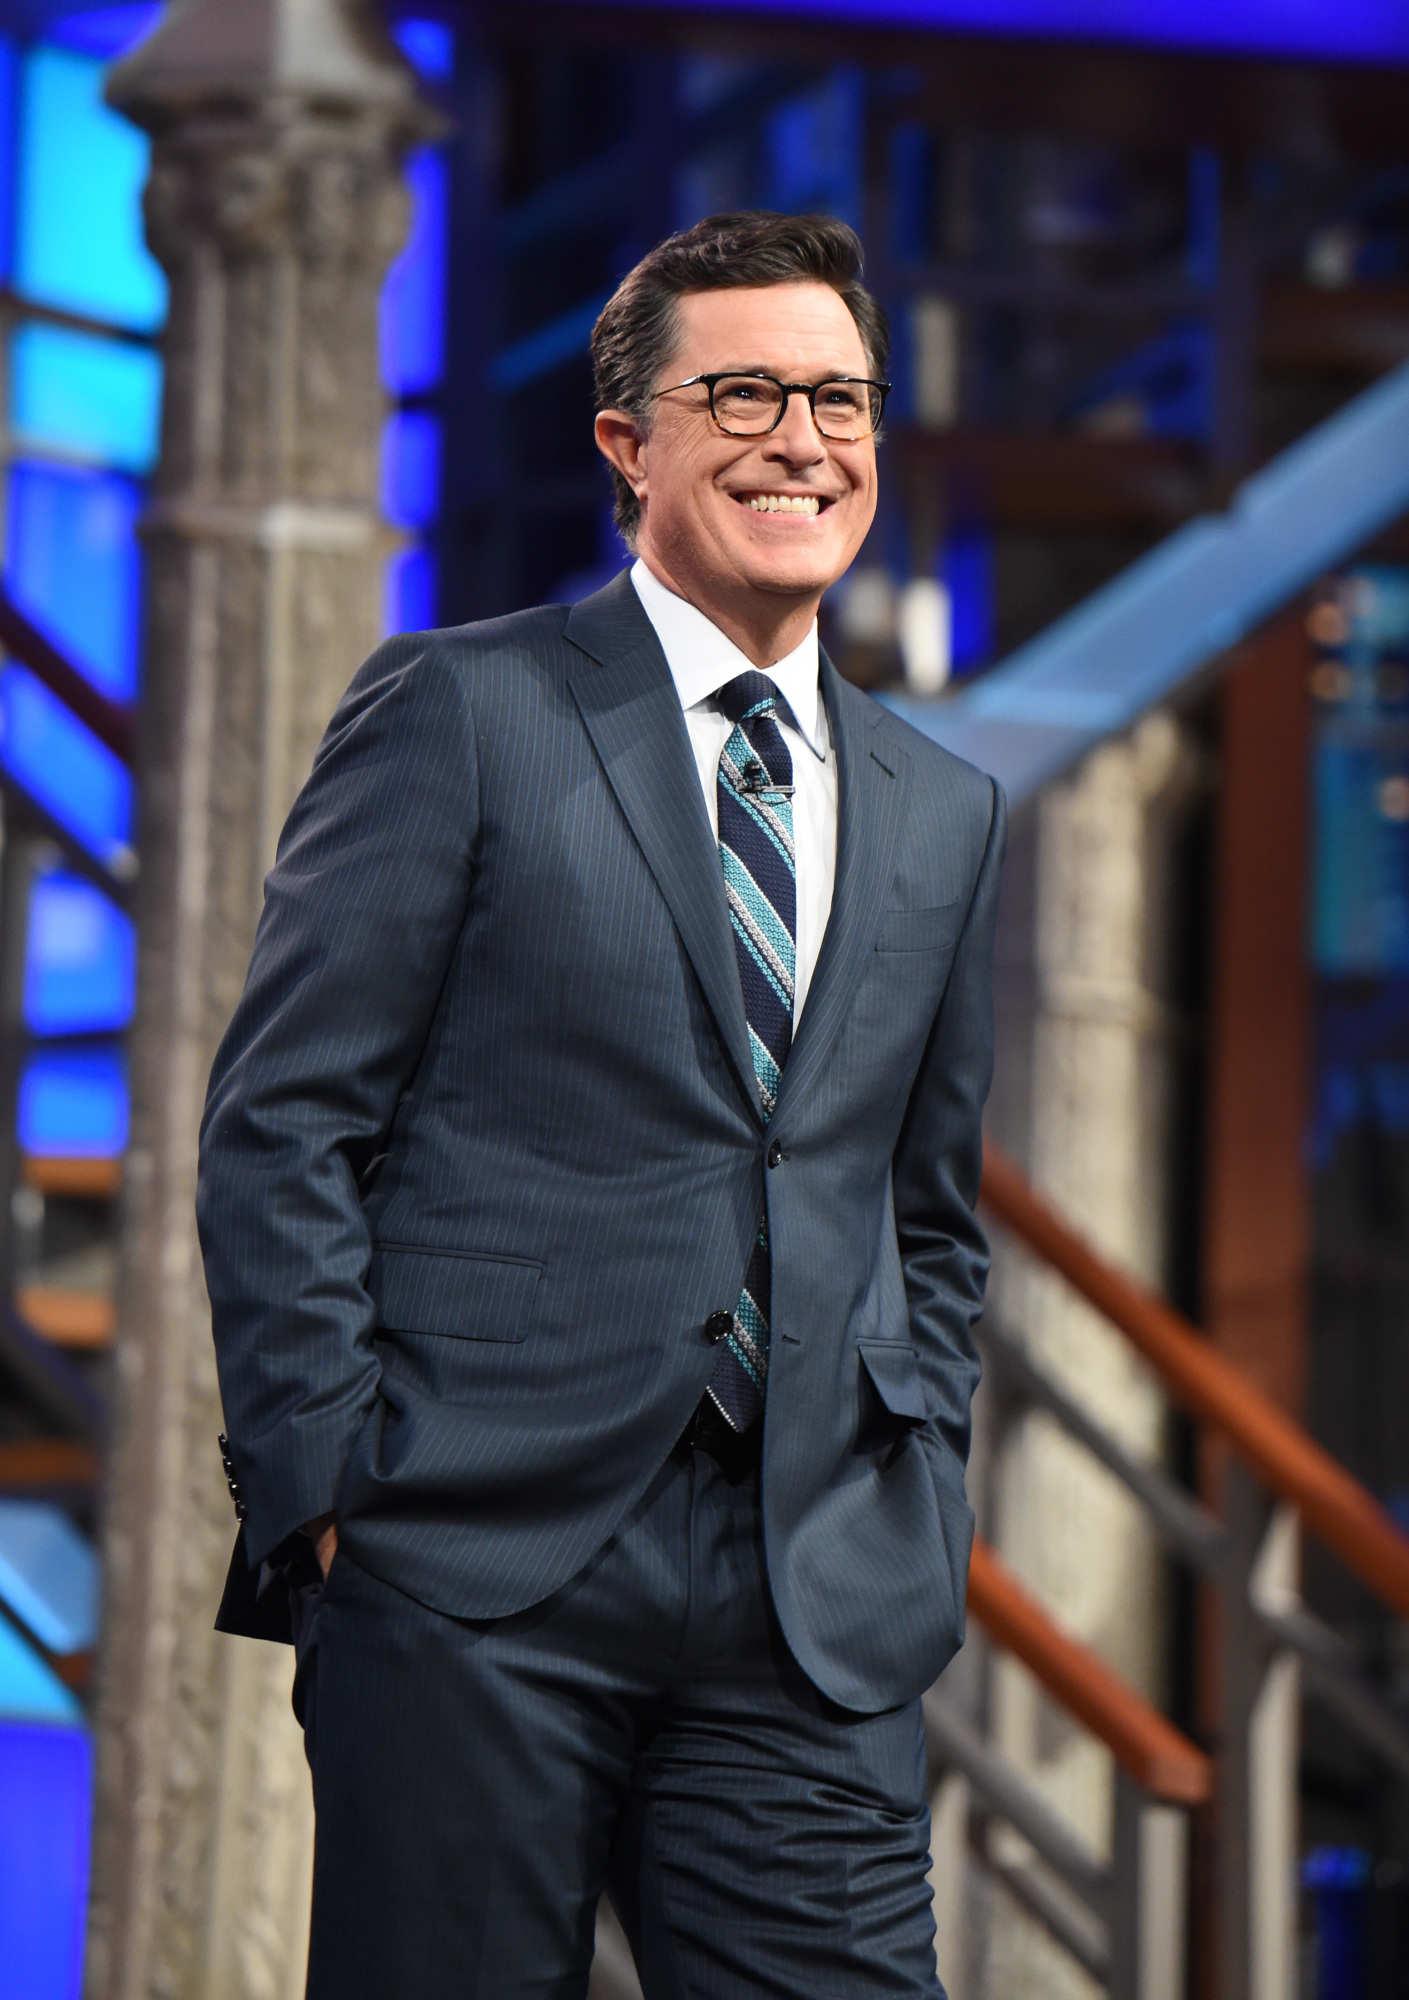 Stephen Colbert to host CBS's 'The Late Show' until 2023